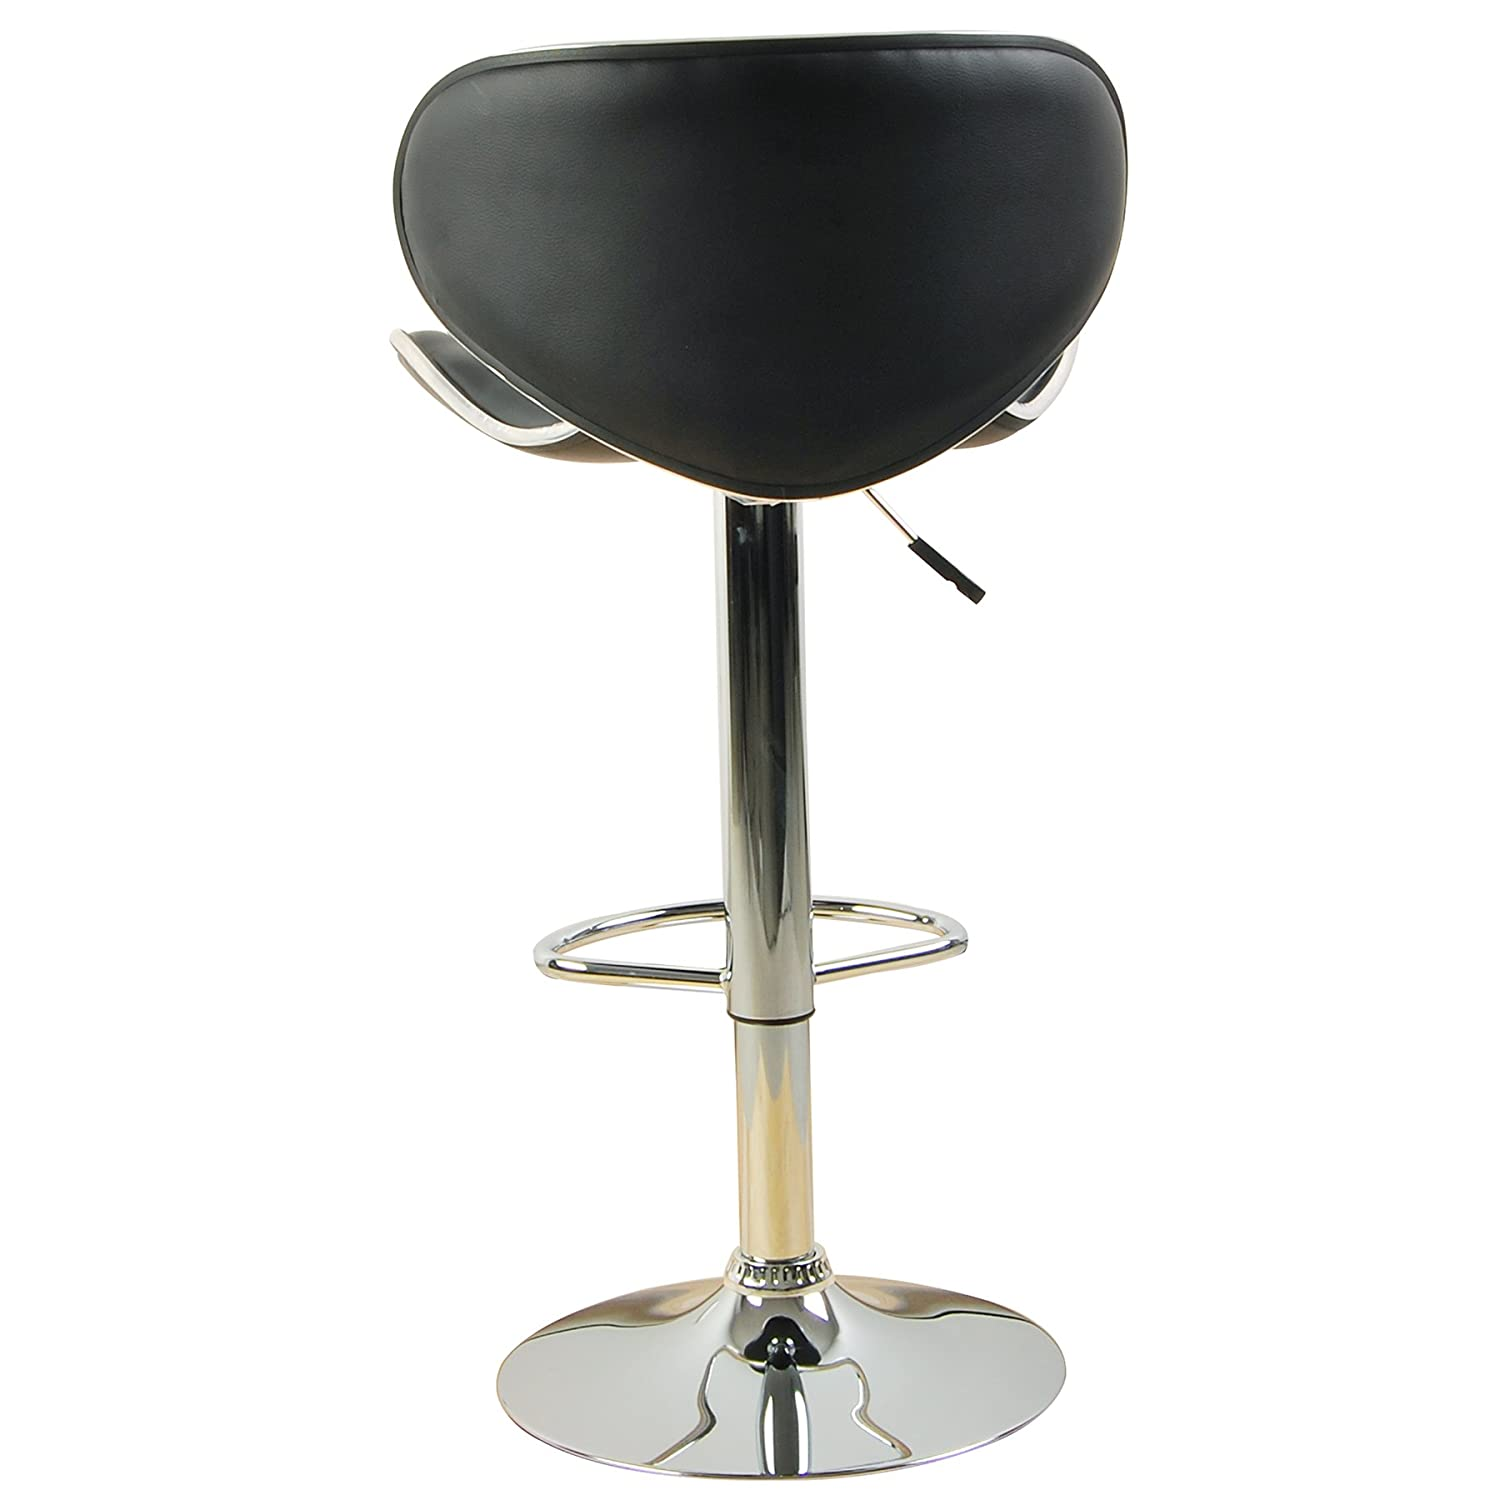 Tabouret de bar pas cher amazon - Tabourets bar pas cher ...